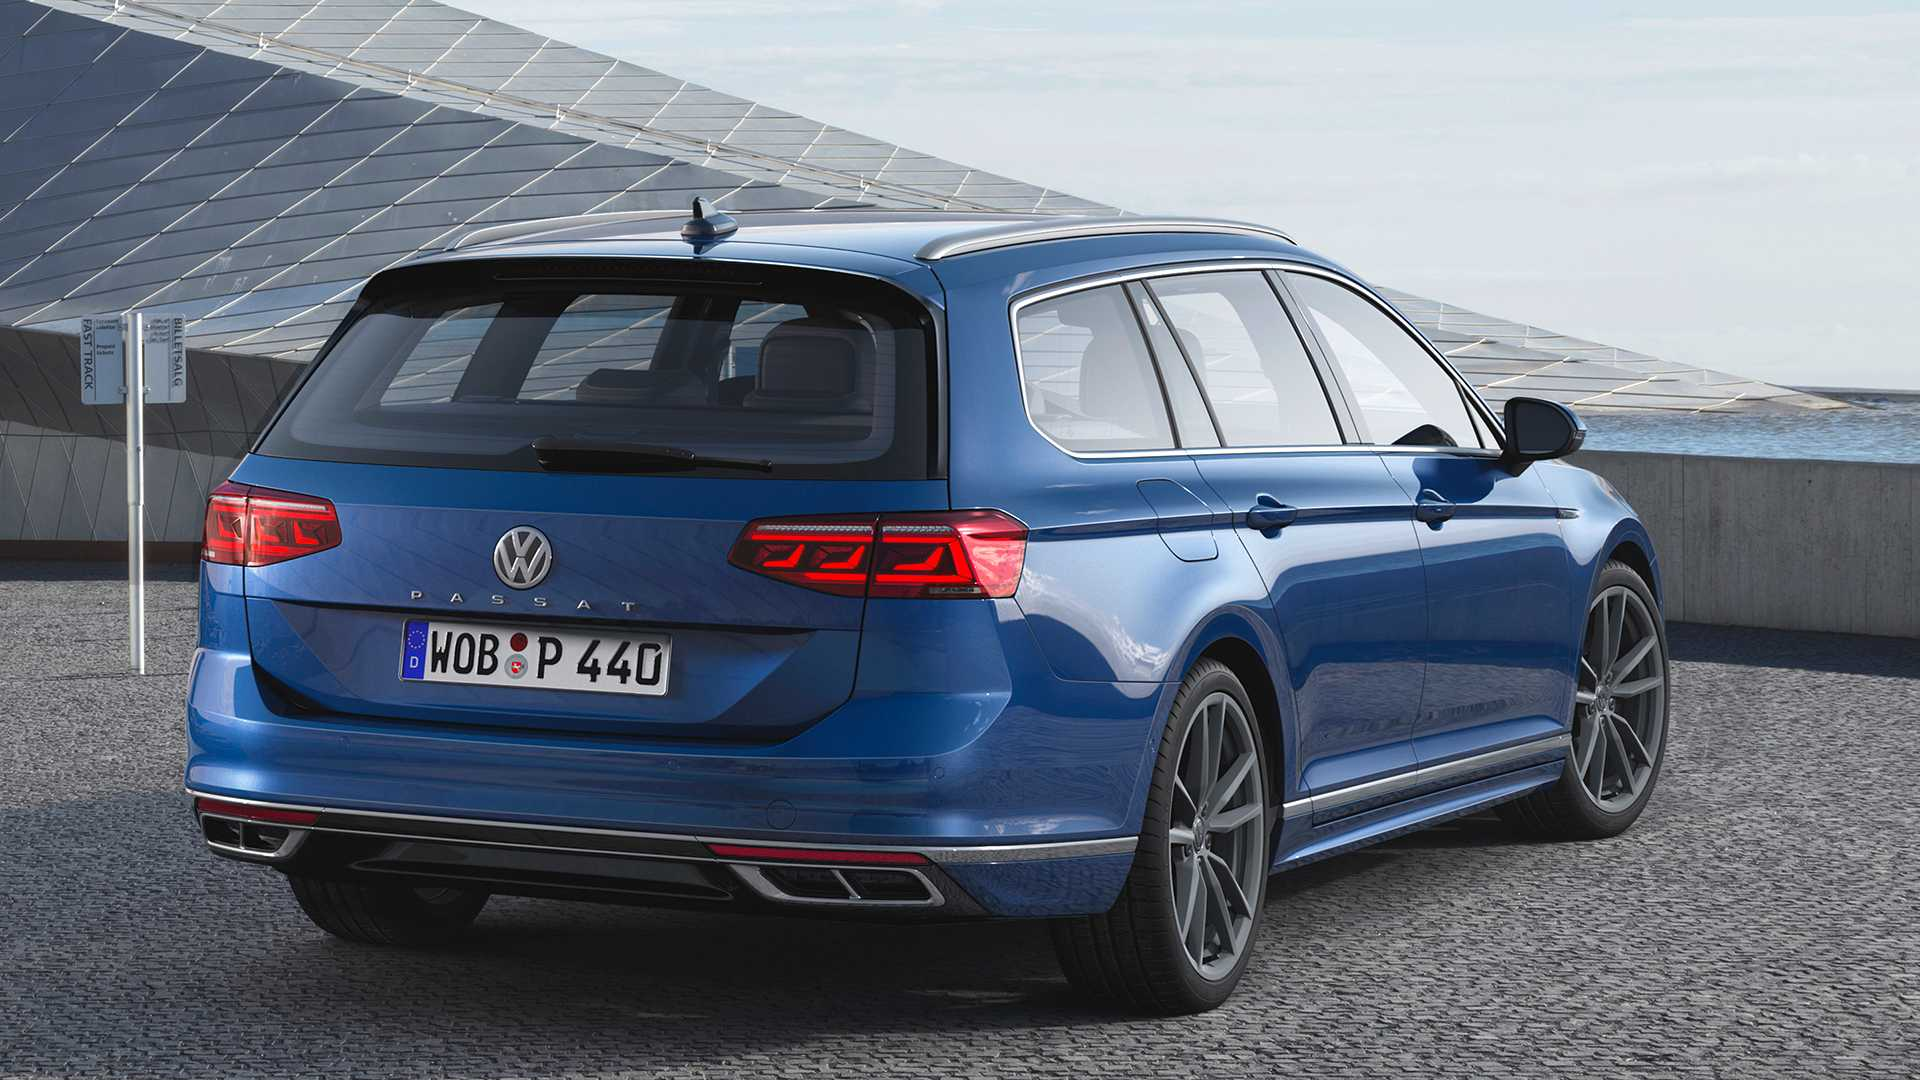 vw-passat-facelift-2019 (4)